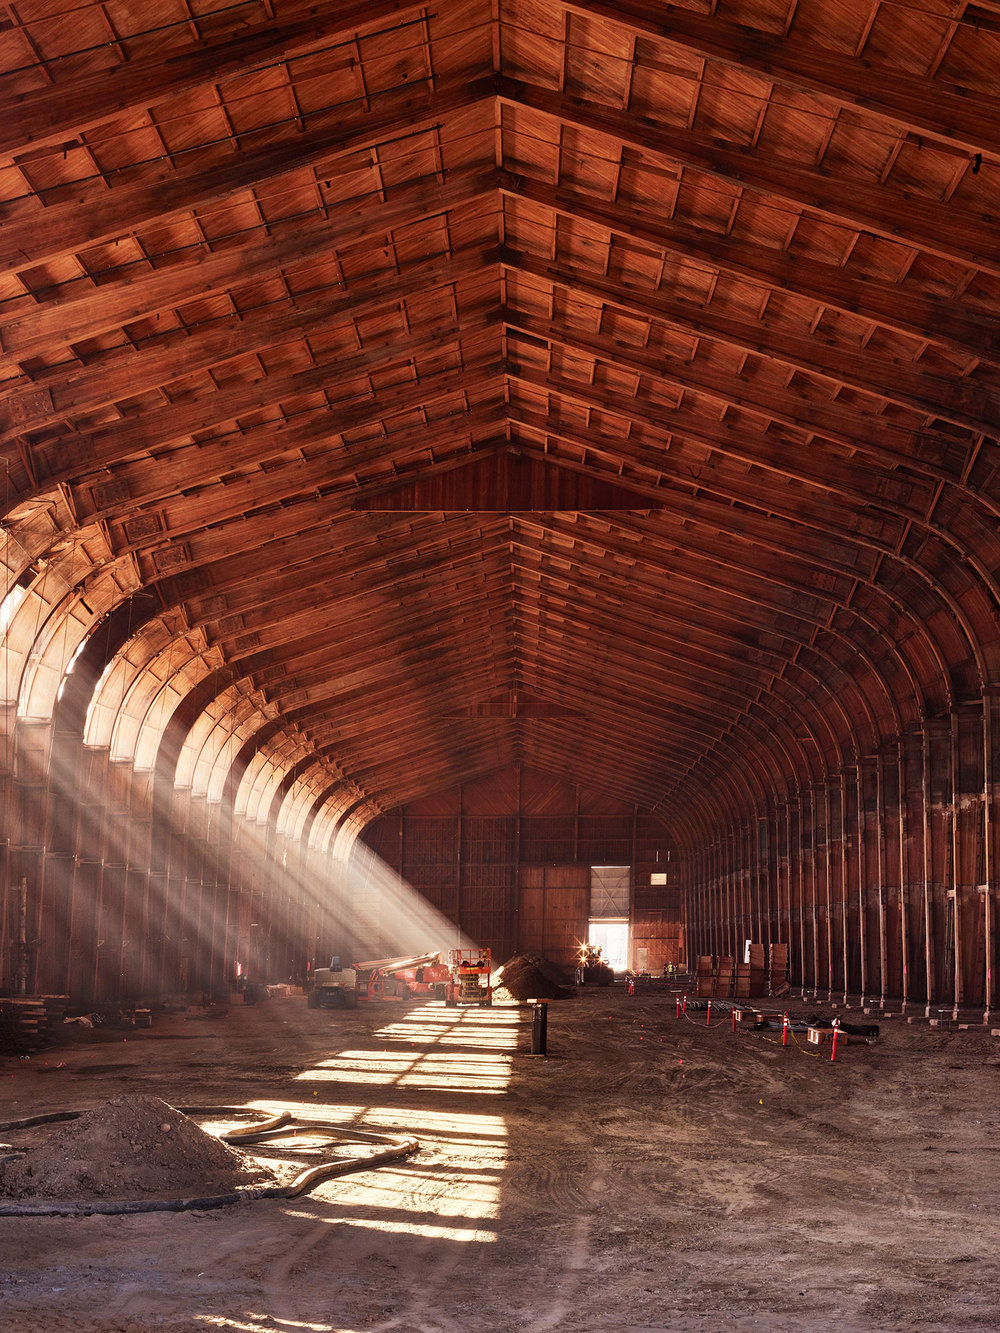 Spruce Goose Hanger being remodeled into a Google Campus